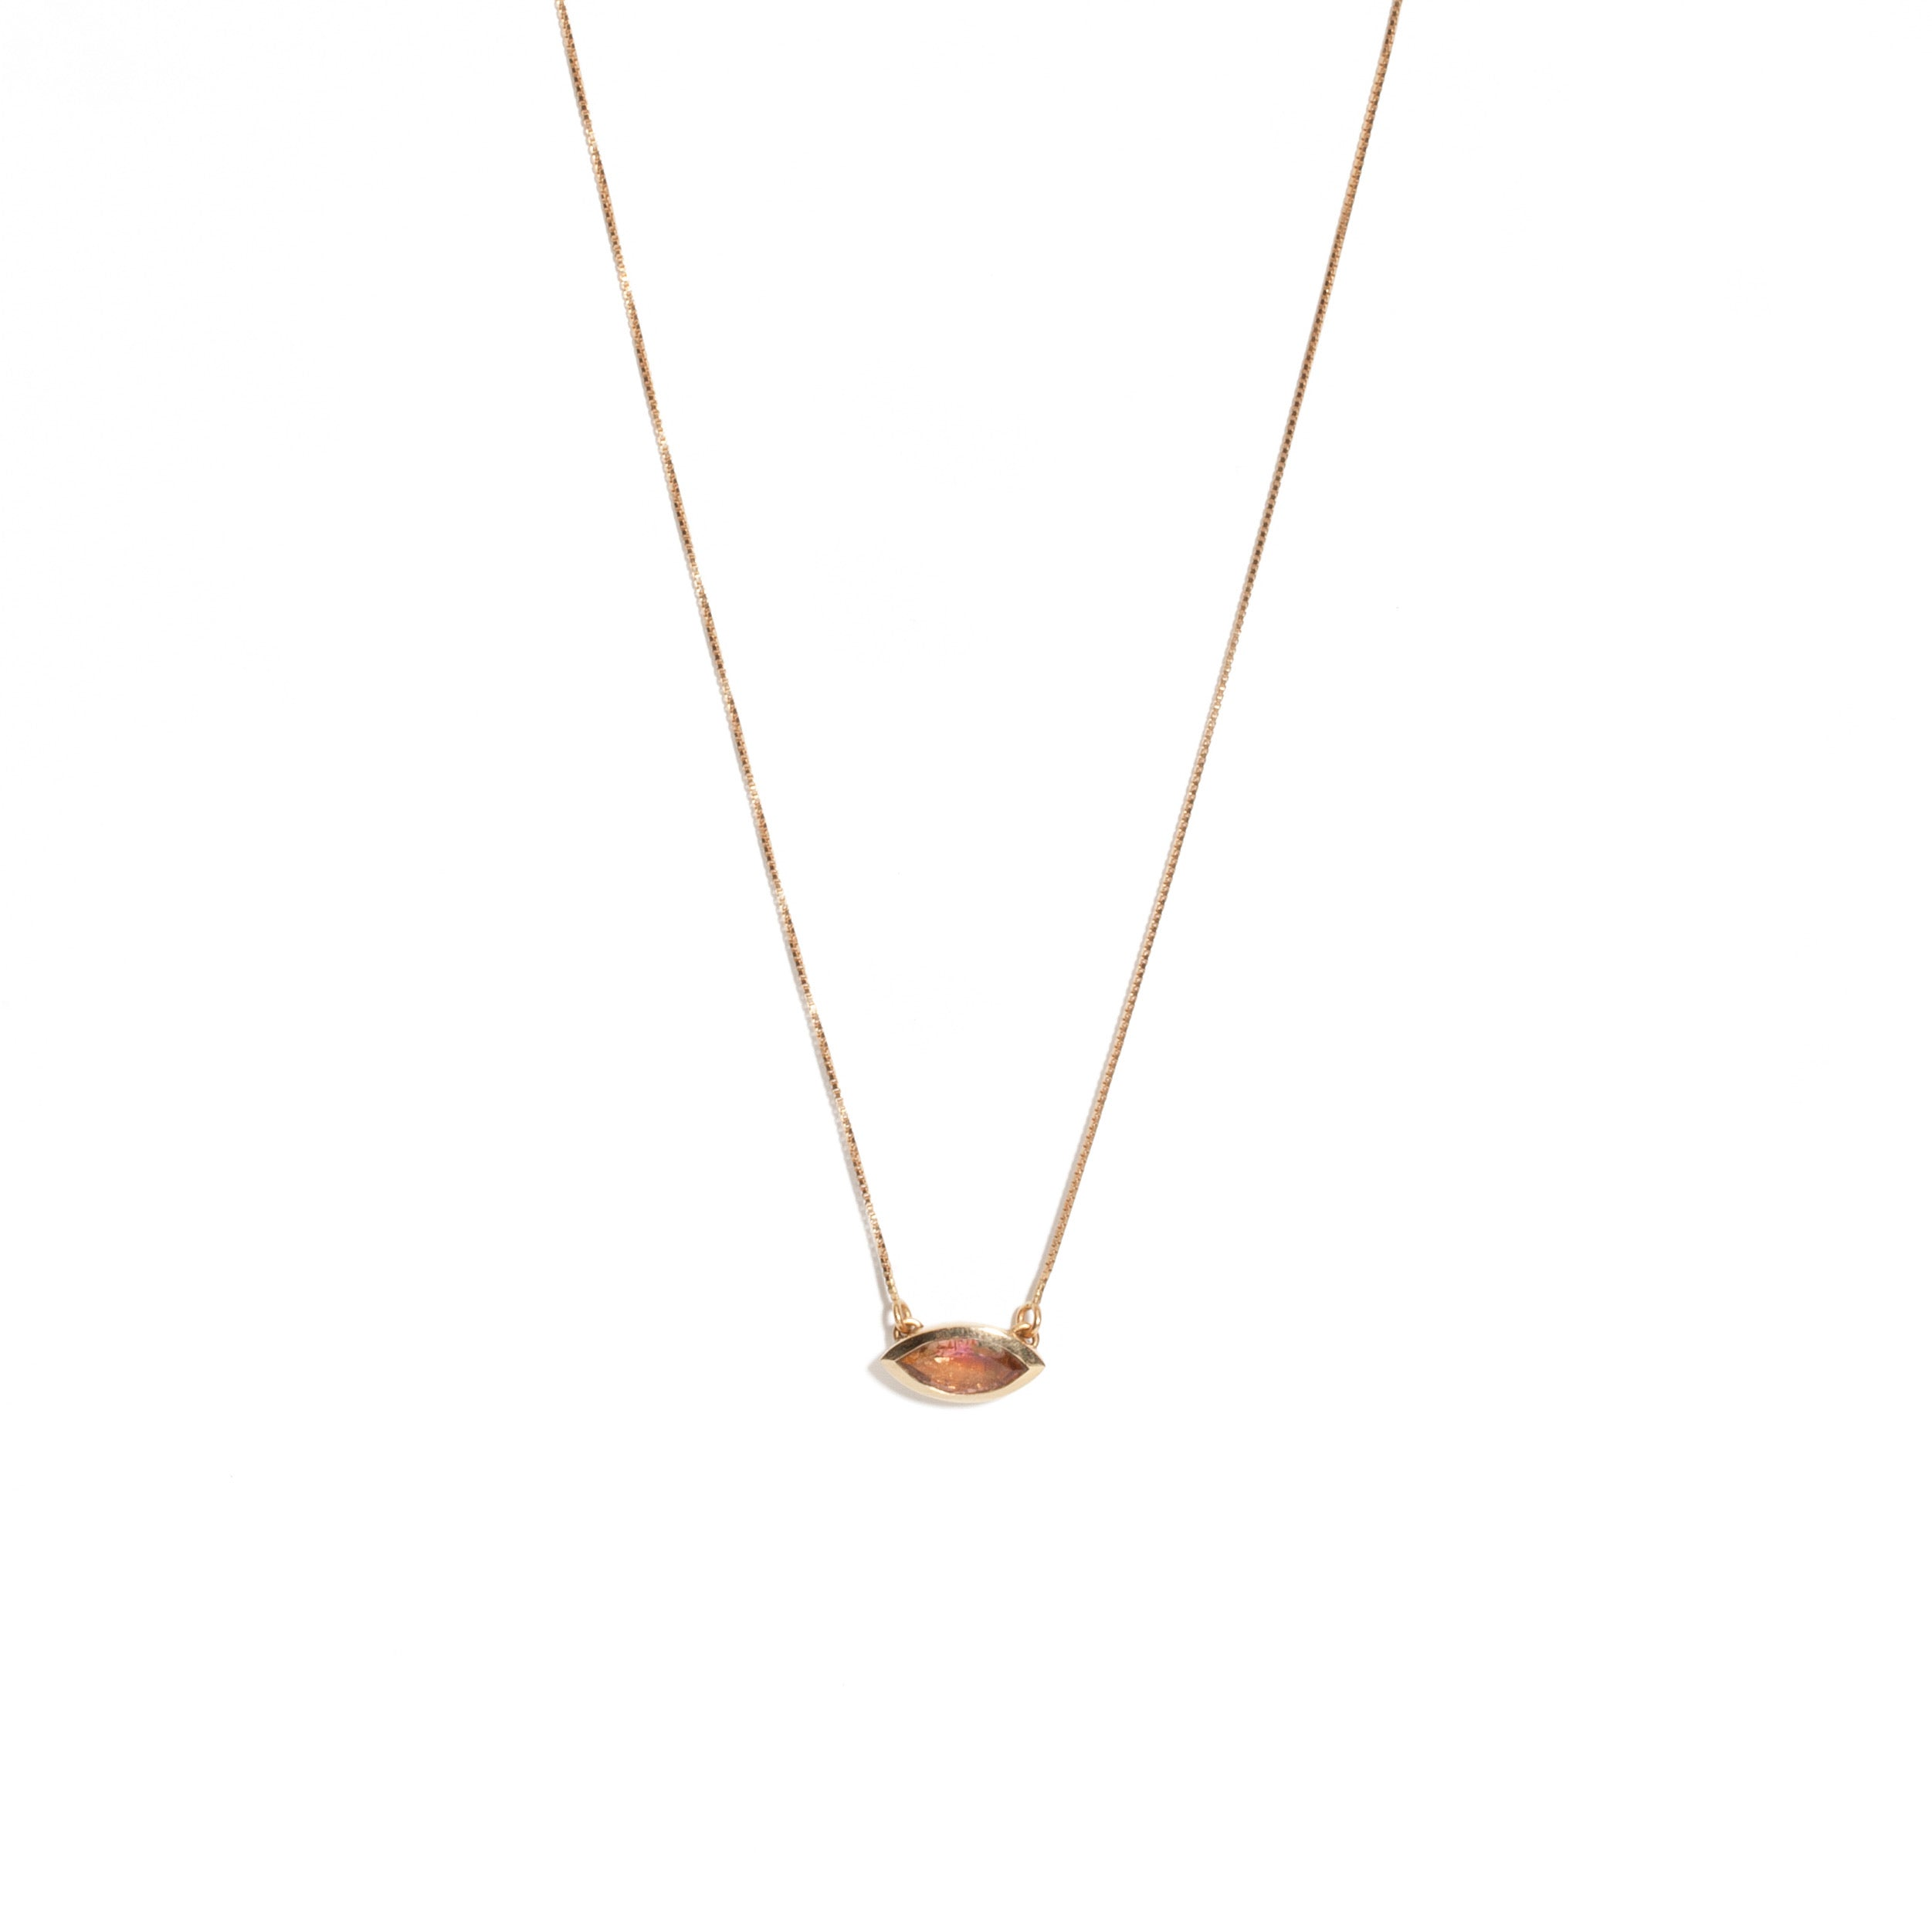 La Navette Necklace